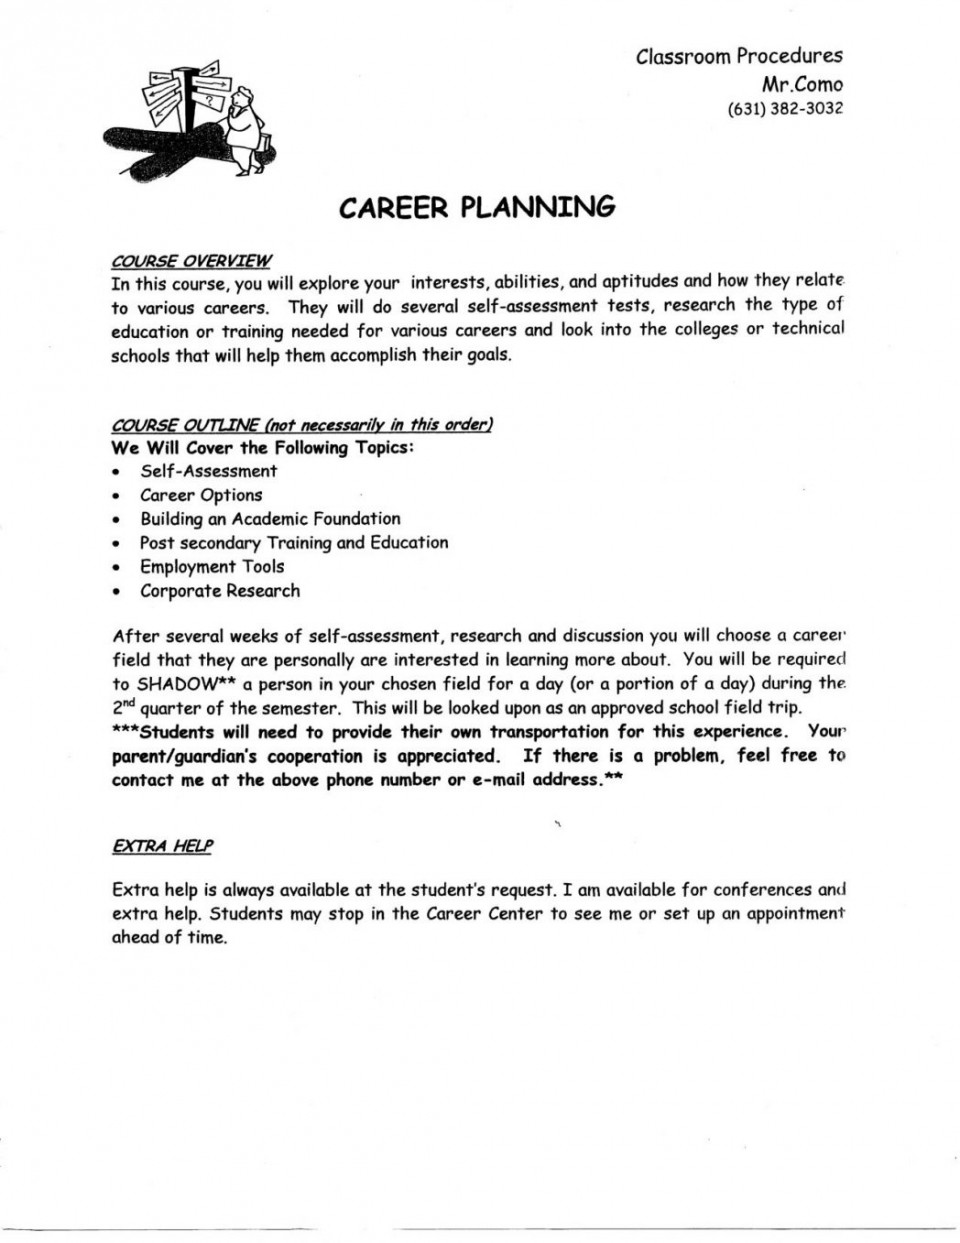 006 Future Plan Essay Plans Career After Graduation College Application Outline Format Planni Template Admission Layout Pdf 1048x1357 Impressive Ielts For Scholarship Sample Example 960